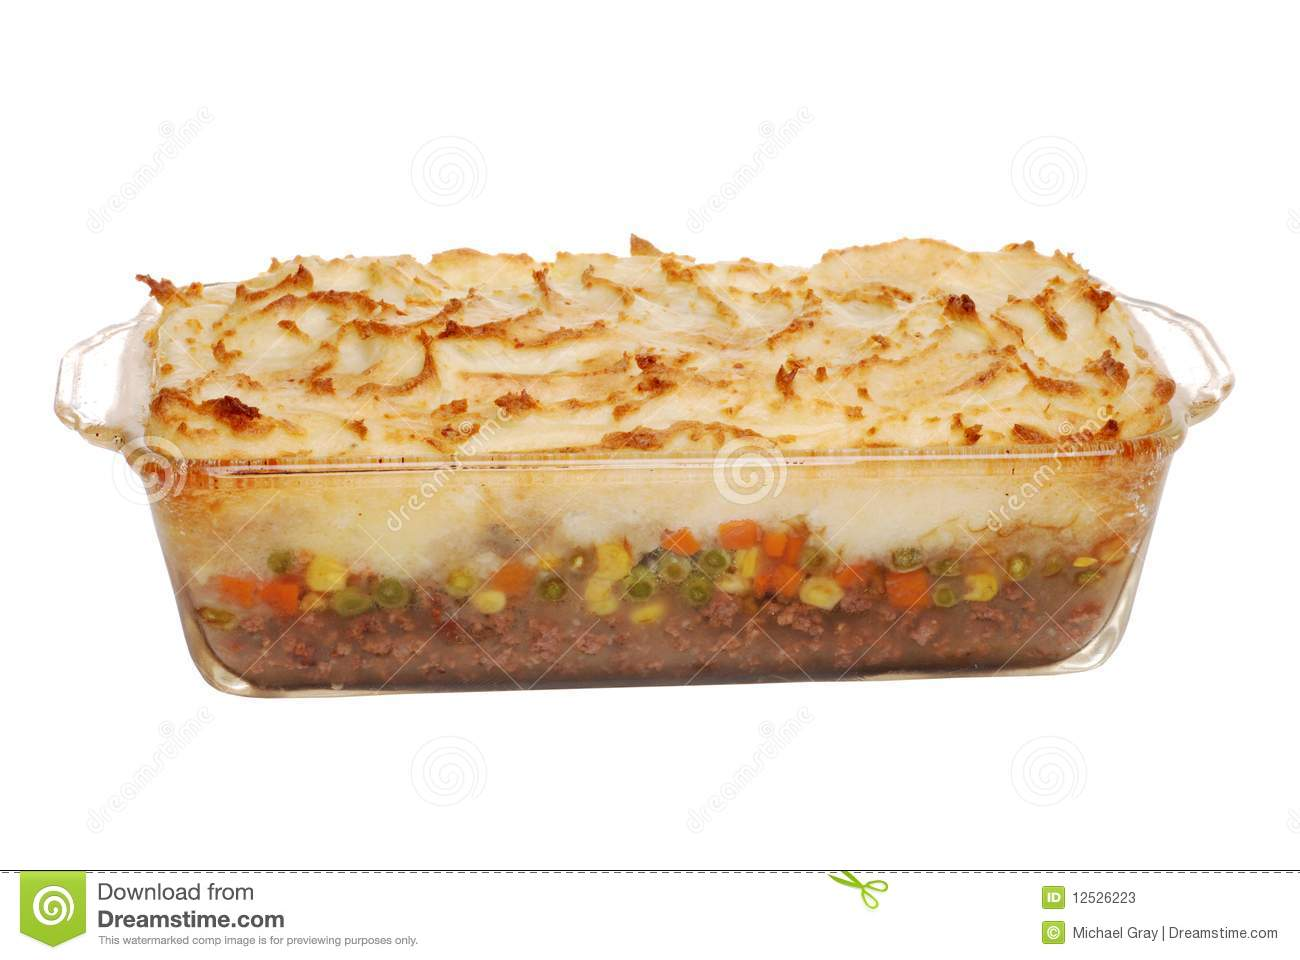 Stock Photos Hot Homemade Shepards Pie Image12526223 as well HopIntoSpringMenu together with Stock Image Plate Cocktail Sausages Image12344431 further Two Hamburgers moreover Animated Healthy Food. on lunch meat clip art